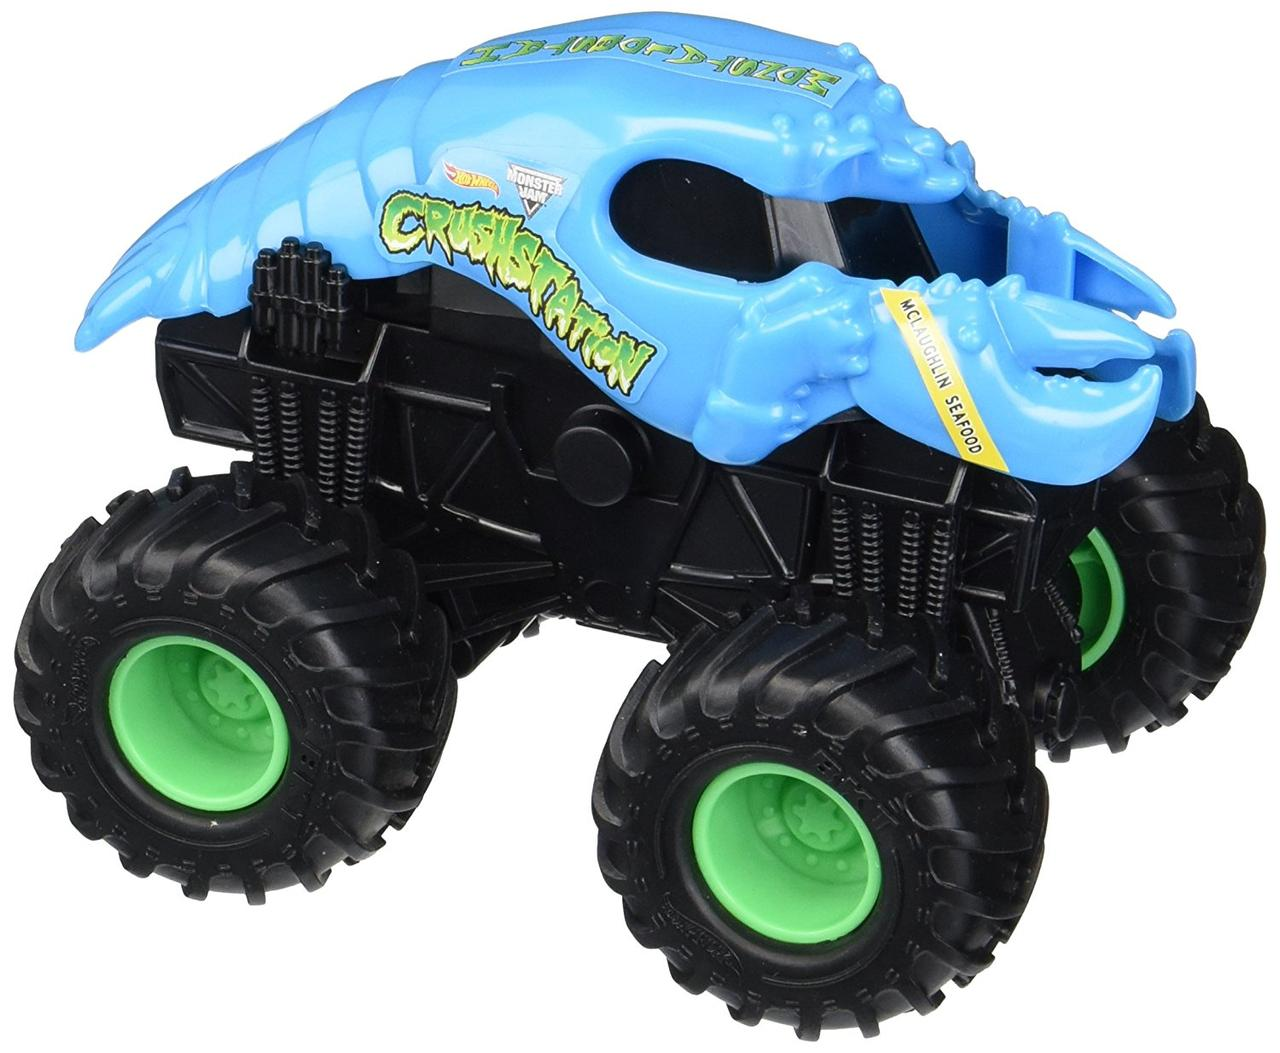 Hot Wheels Monster Jam Внедорожник краб омар инерционный 1:43 Scale Jam Rev Tredz Crushstation Vehicle